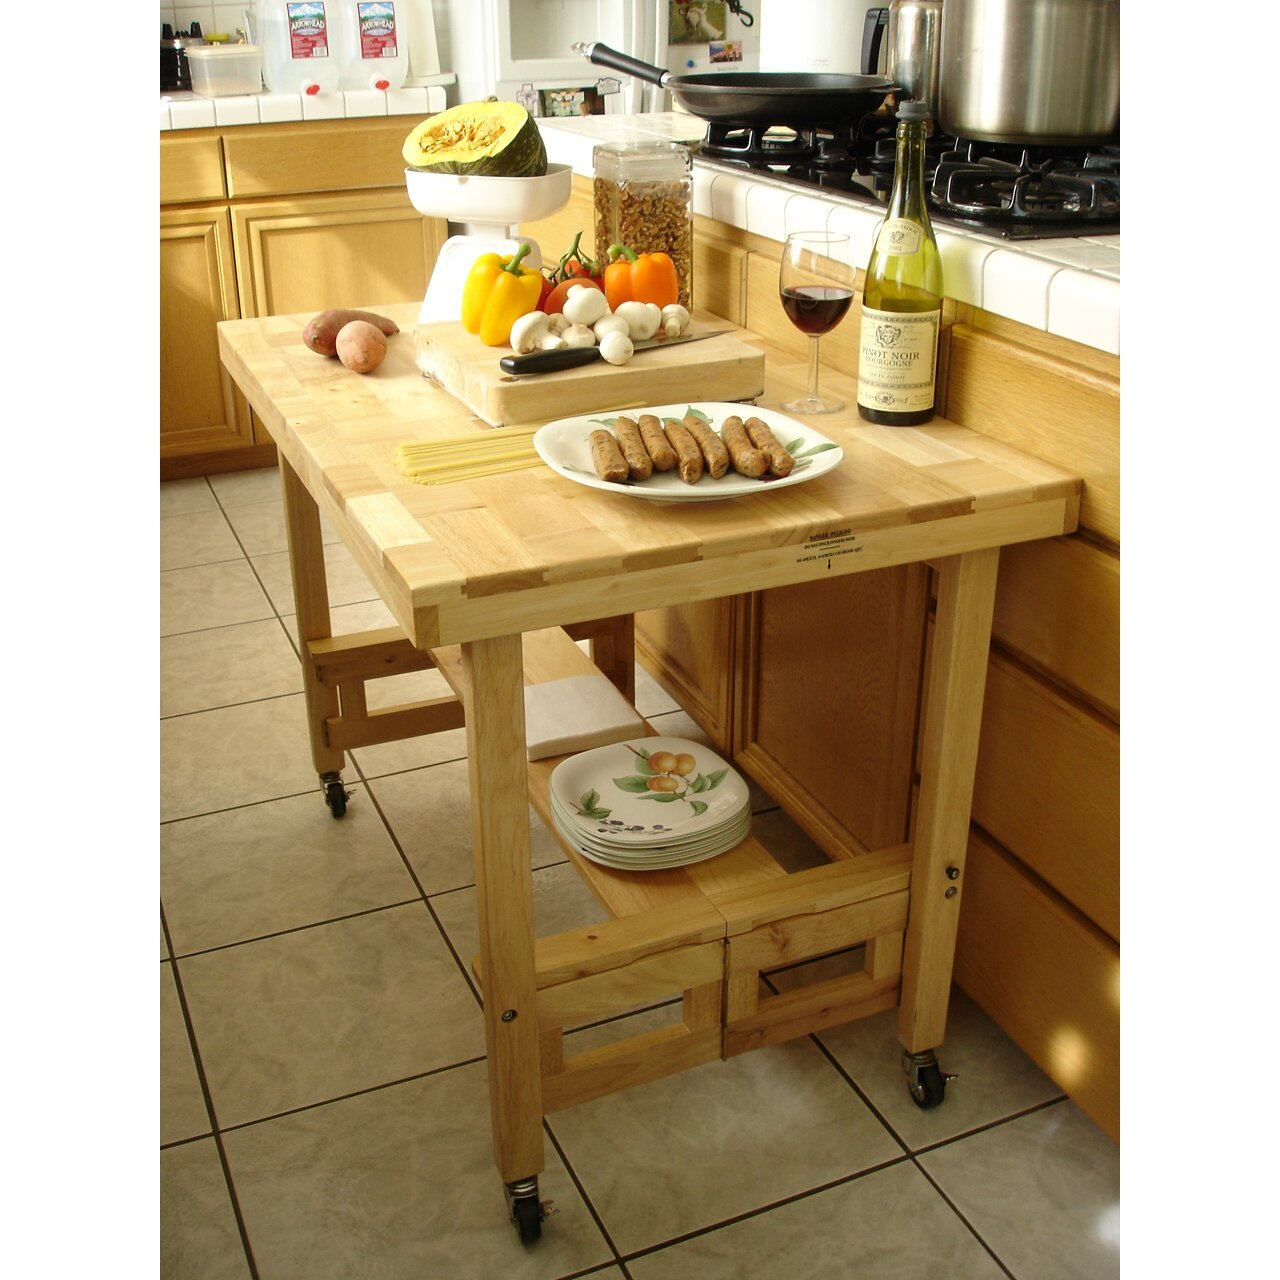 Oasis concepts dining table reviews wayfair - Kitchen island dining table ...